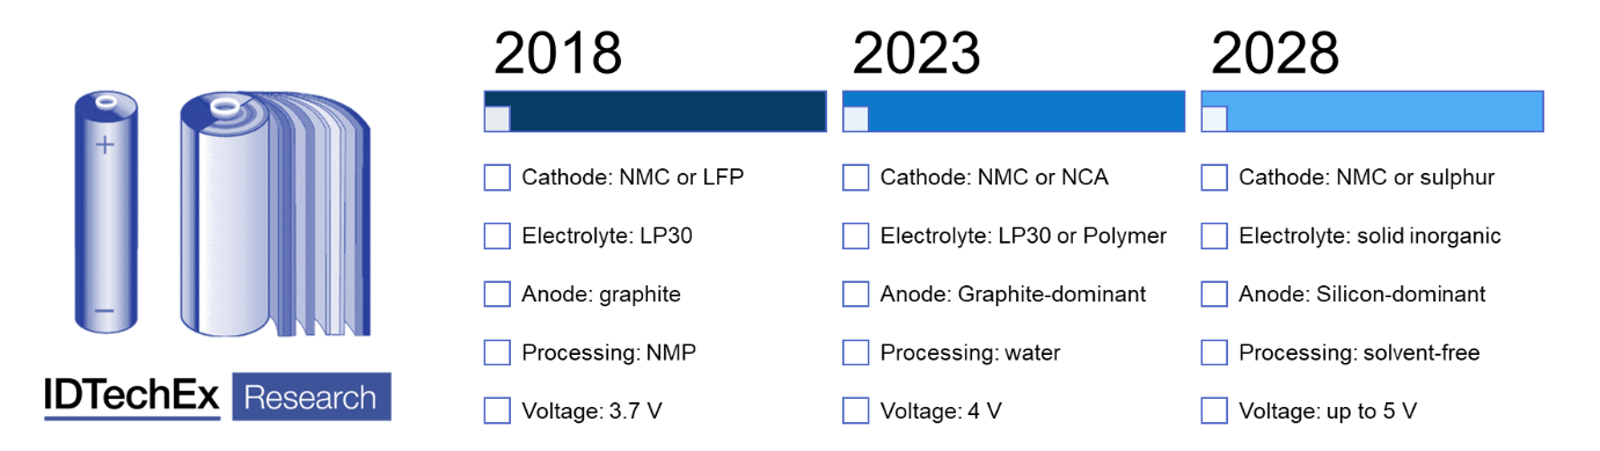 Lithium-Ion Batteries for Electric Vehicles 2020-2030: IDTechEx